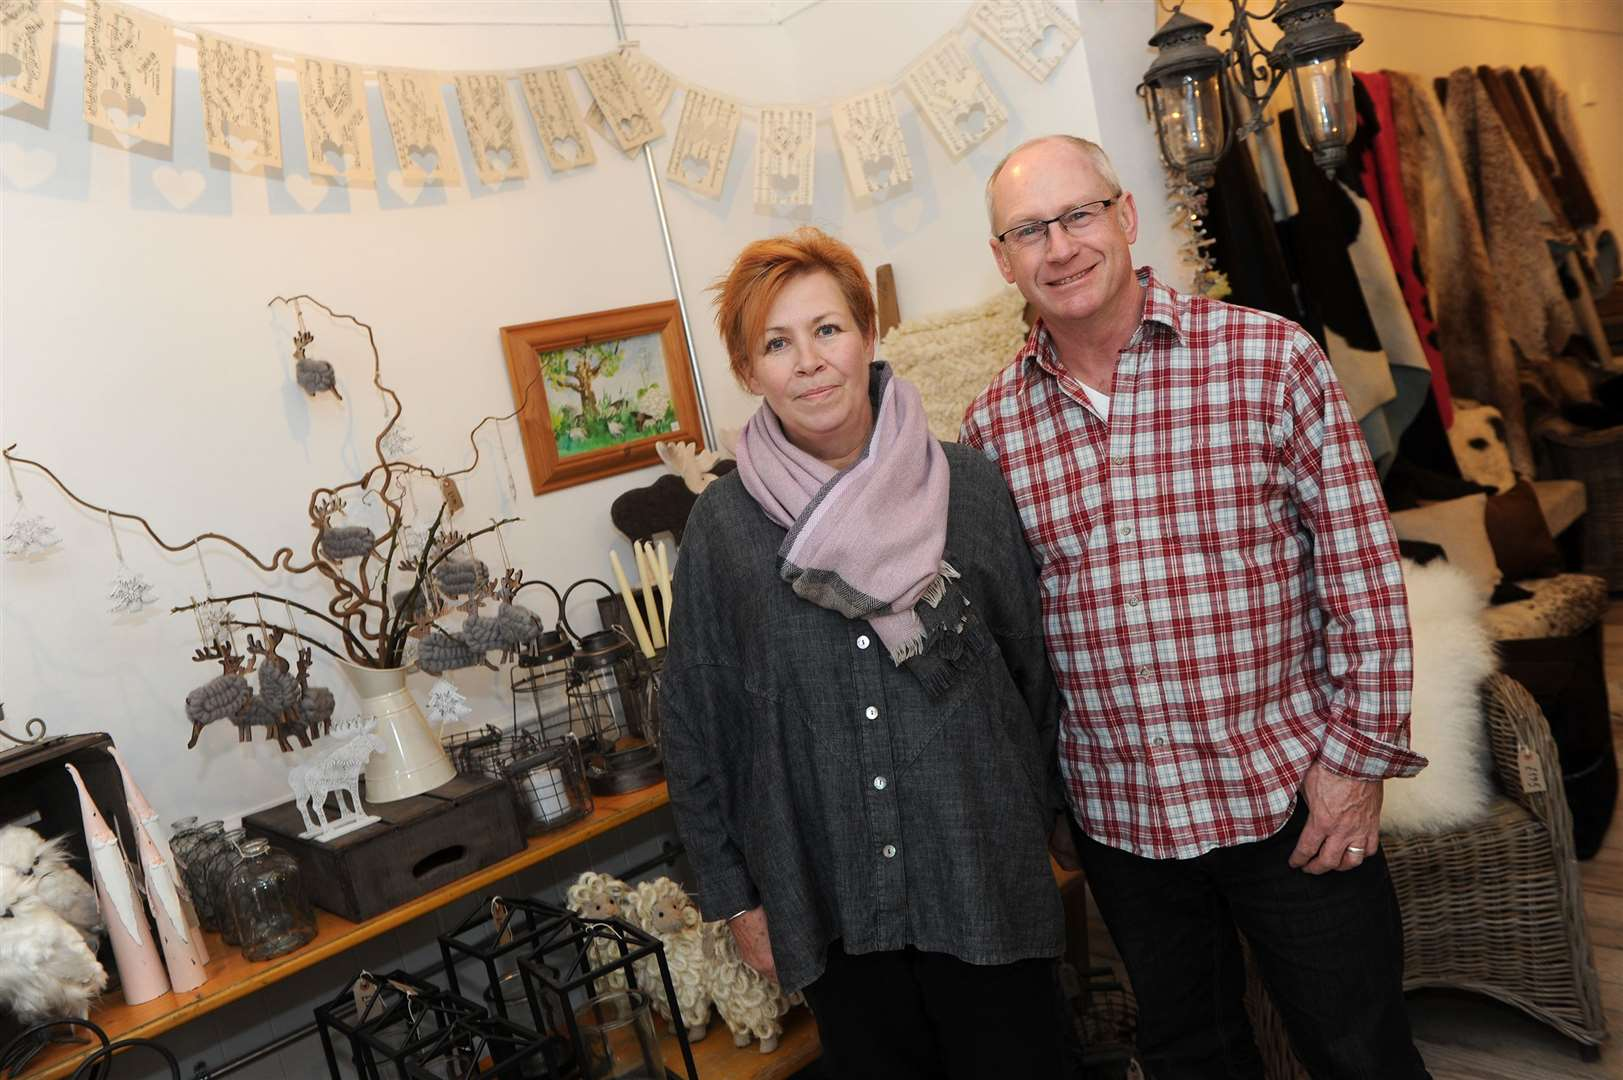 Tim Farnsworth and Liza Elliott of The Shop - Just Our Stall in St John's Street